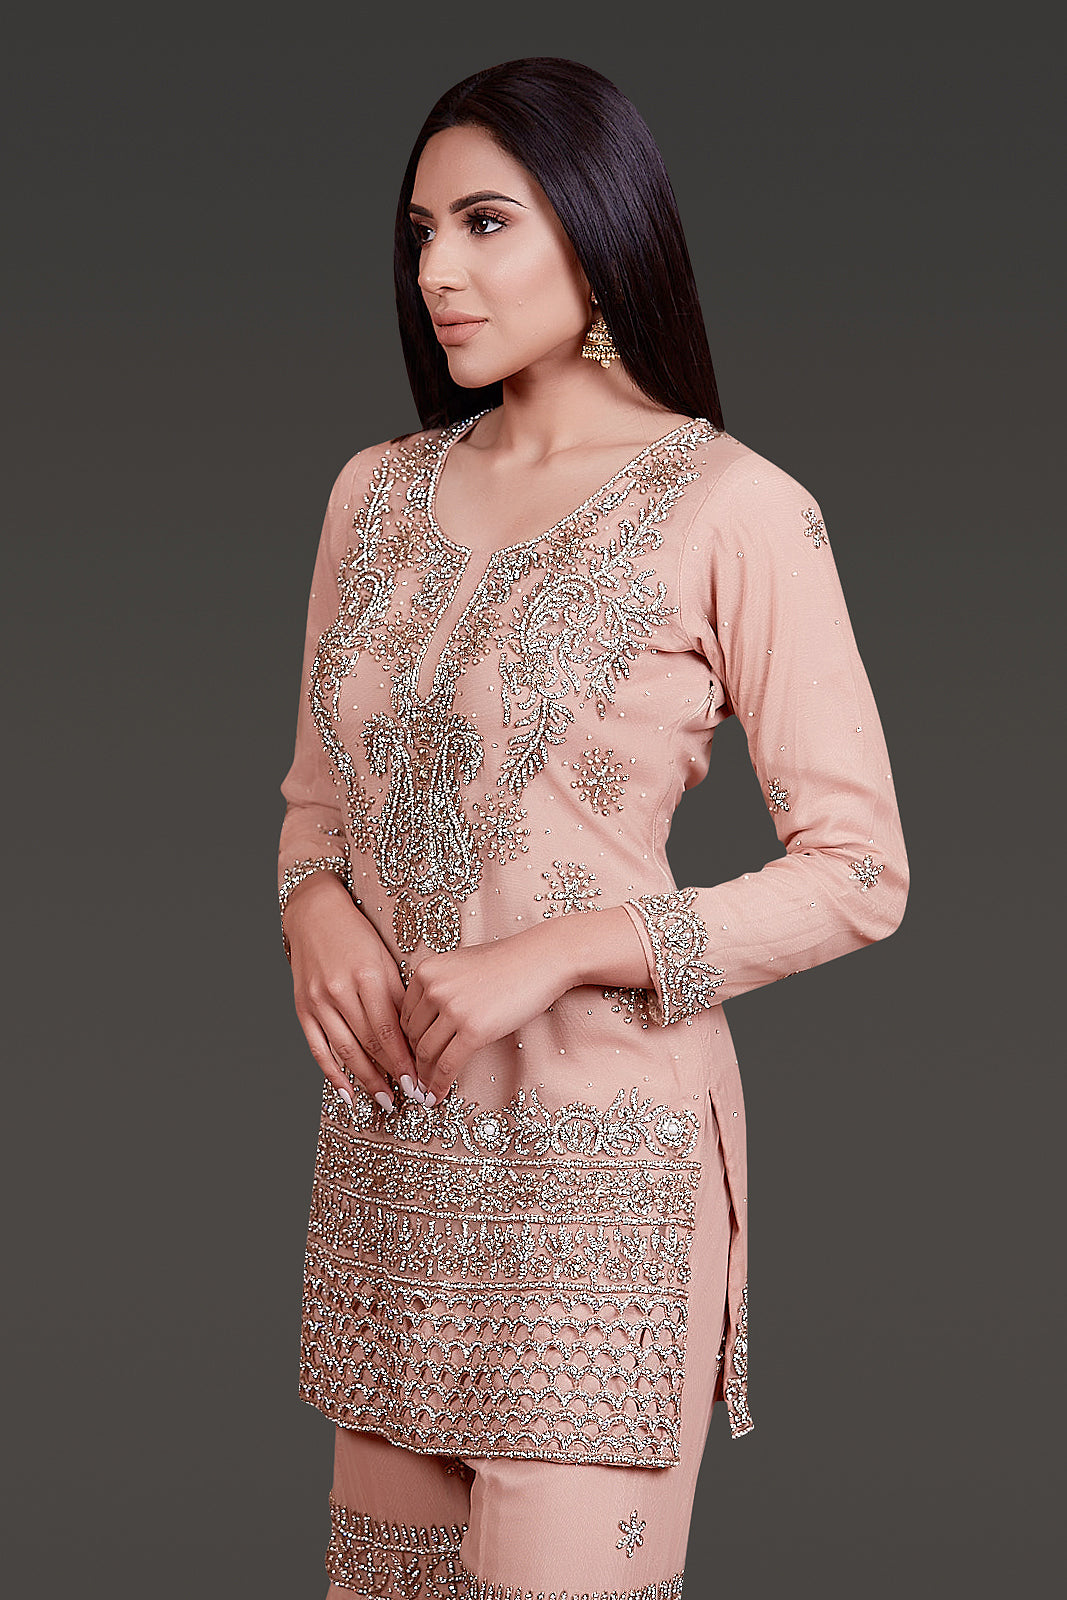 DARK NUDE COLOUR KAMEEZ WITH SILVER ZARKAN EMBROIDERY AND CUTWORK ON THE BORDERS PAIRED WITH A NET SHARARA AND NET DUPATTA